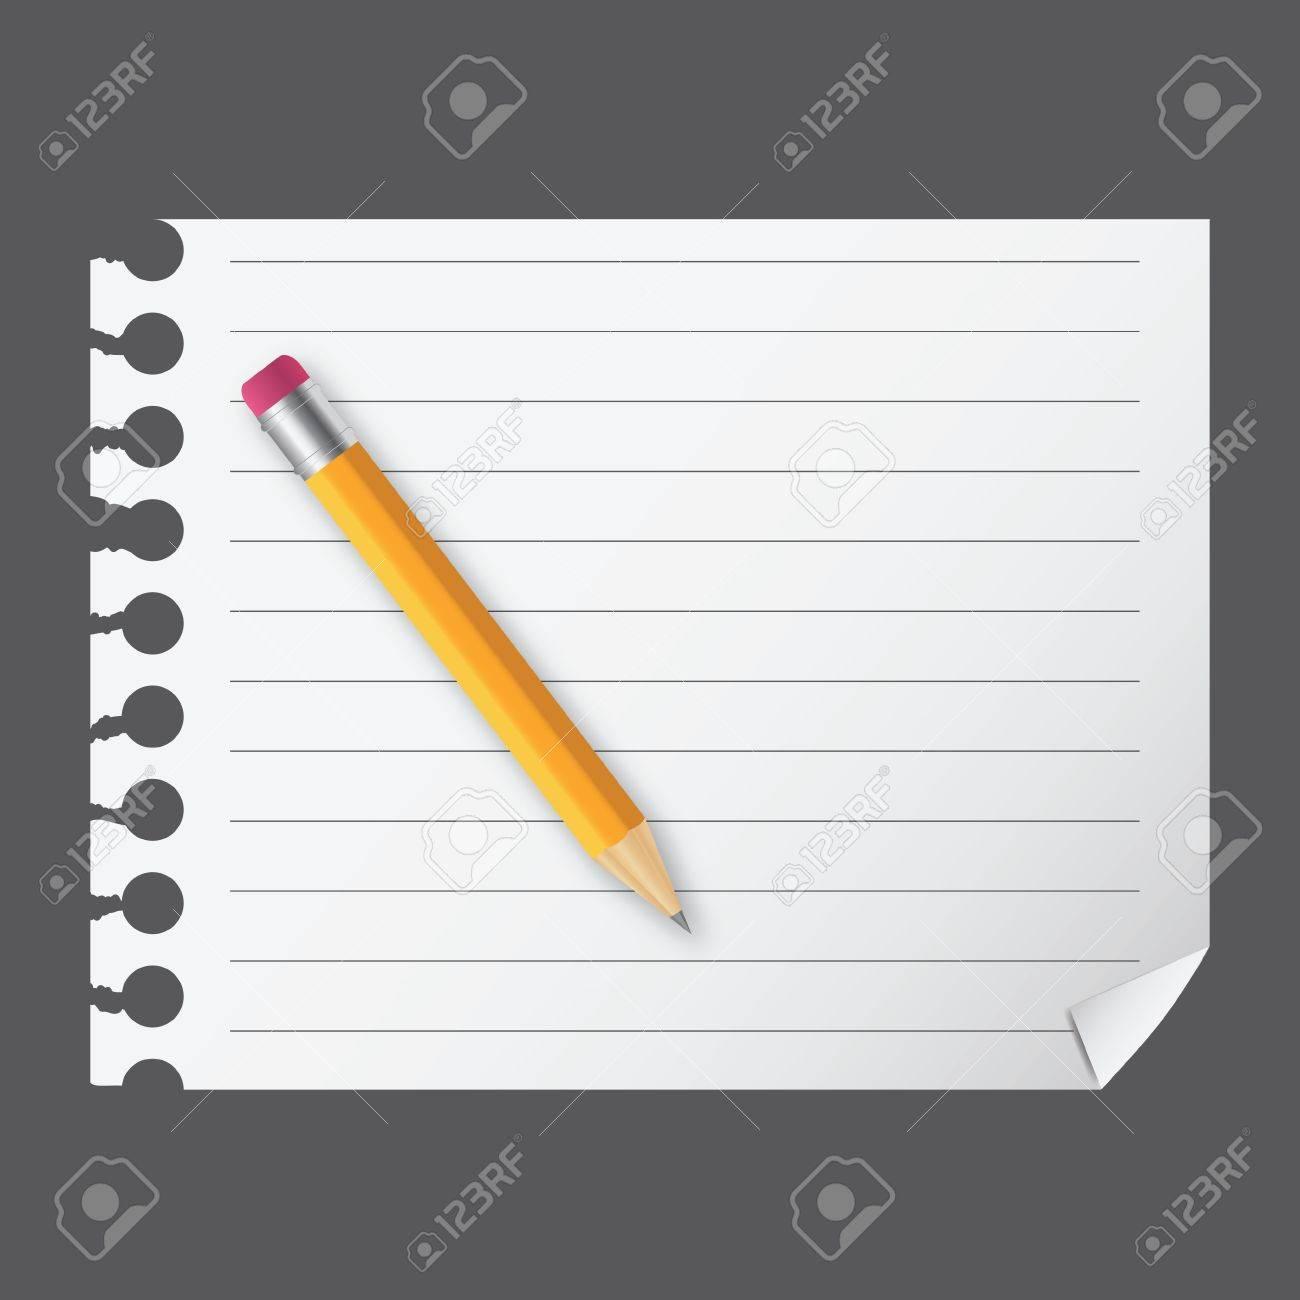 Yellow wooden pencil on a blank notepad vector illustration on business theme Stock Vector - 12303156